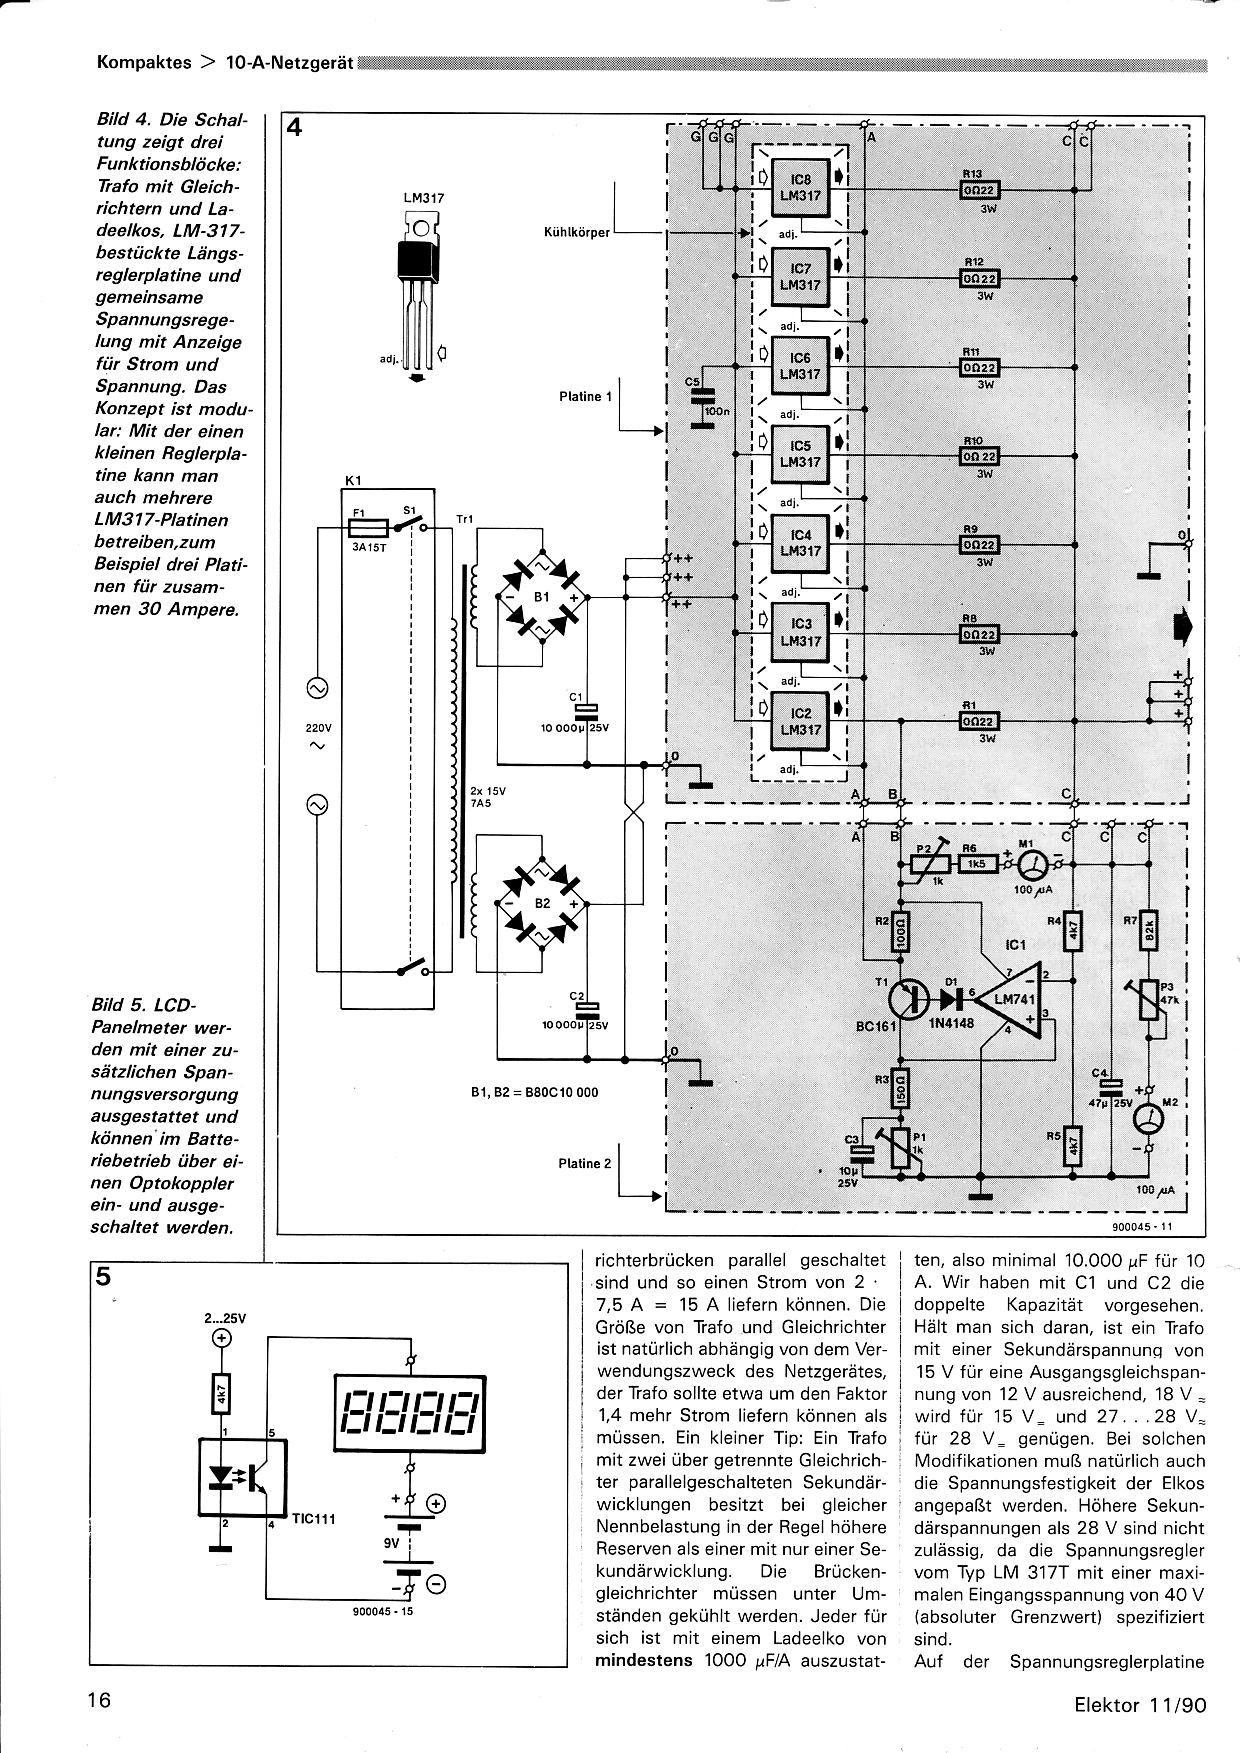 372317 moreover Peltier Heat Resistor Temperature Controller Schematic Issue furthermore Document also 28byj 48 Datasheet 5v Stepper Motor further 4012490. on current regulator circuit